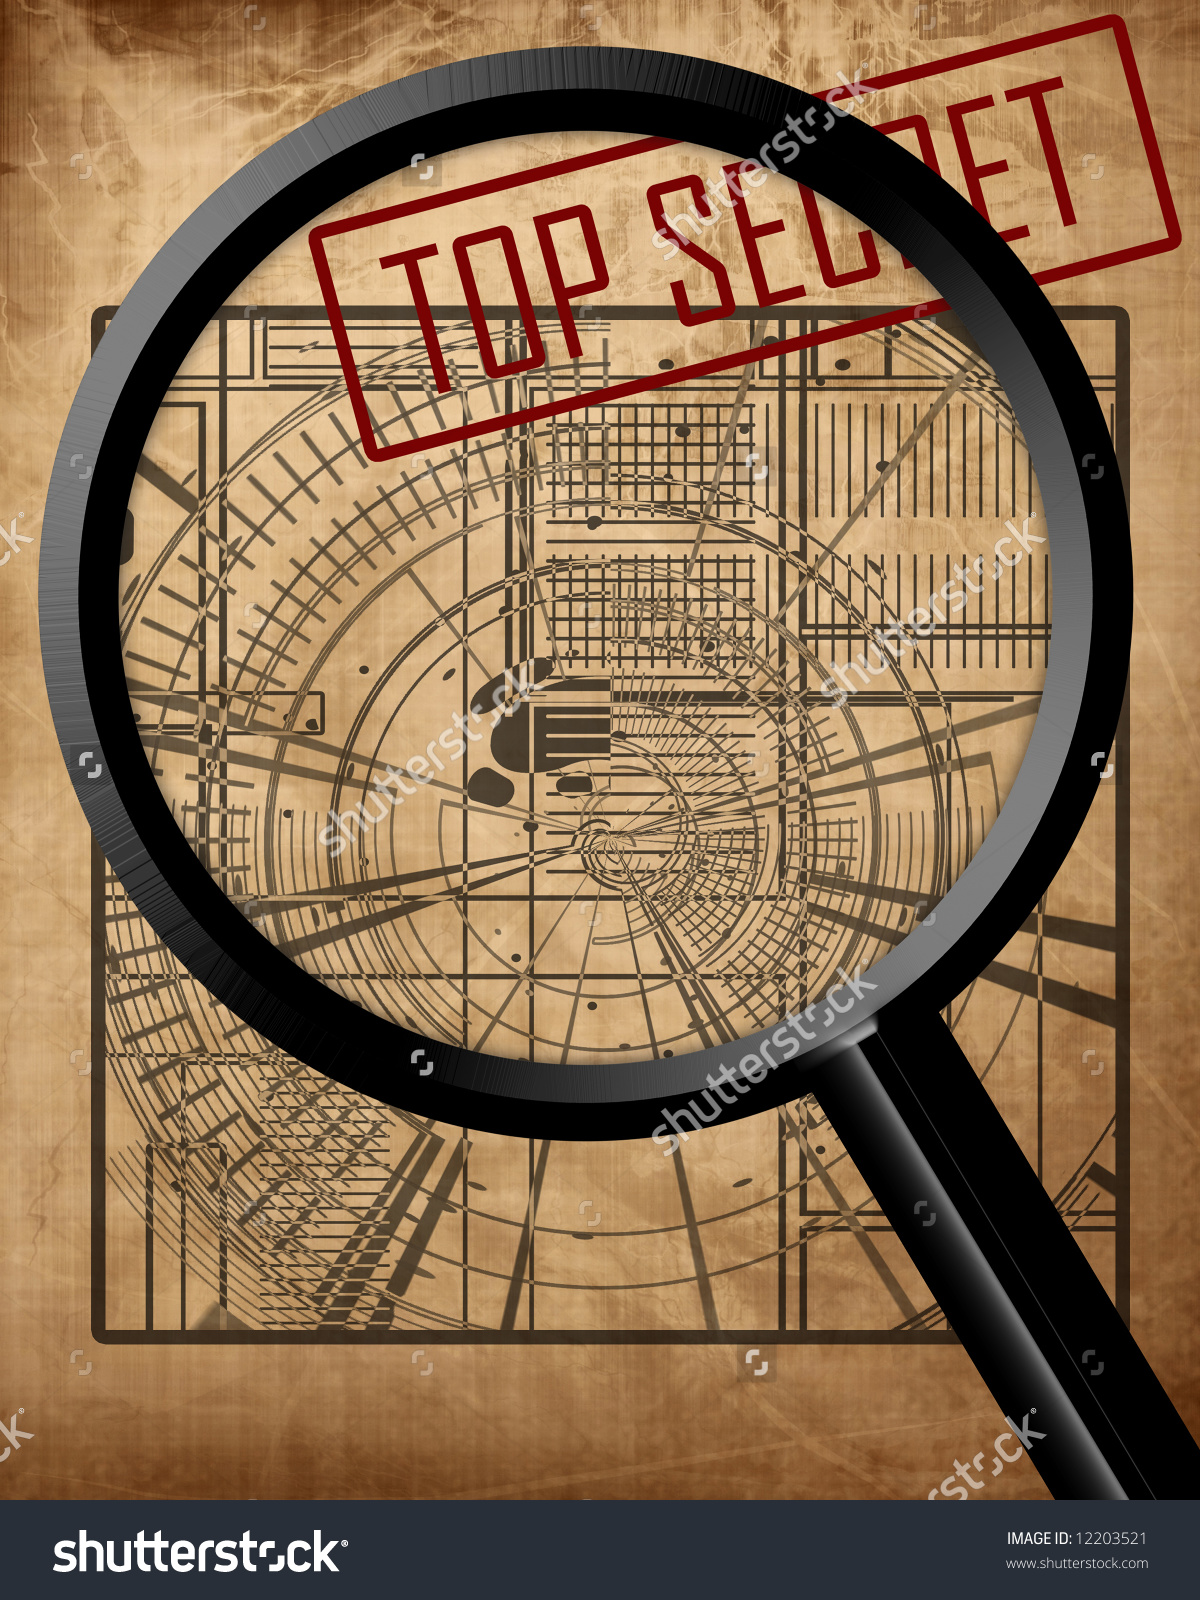 Old Top Secret Blueprint: Espionage Stock Photo 12203521.